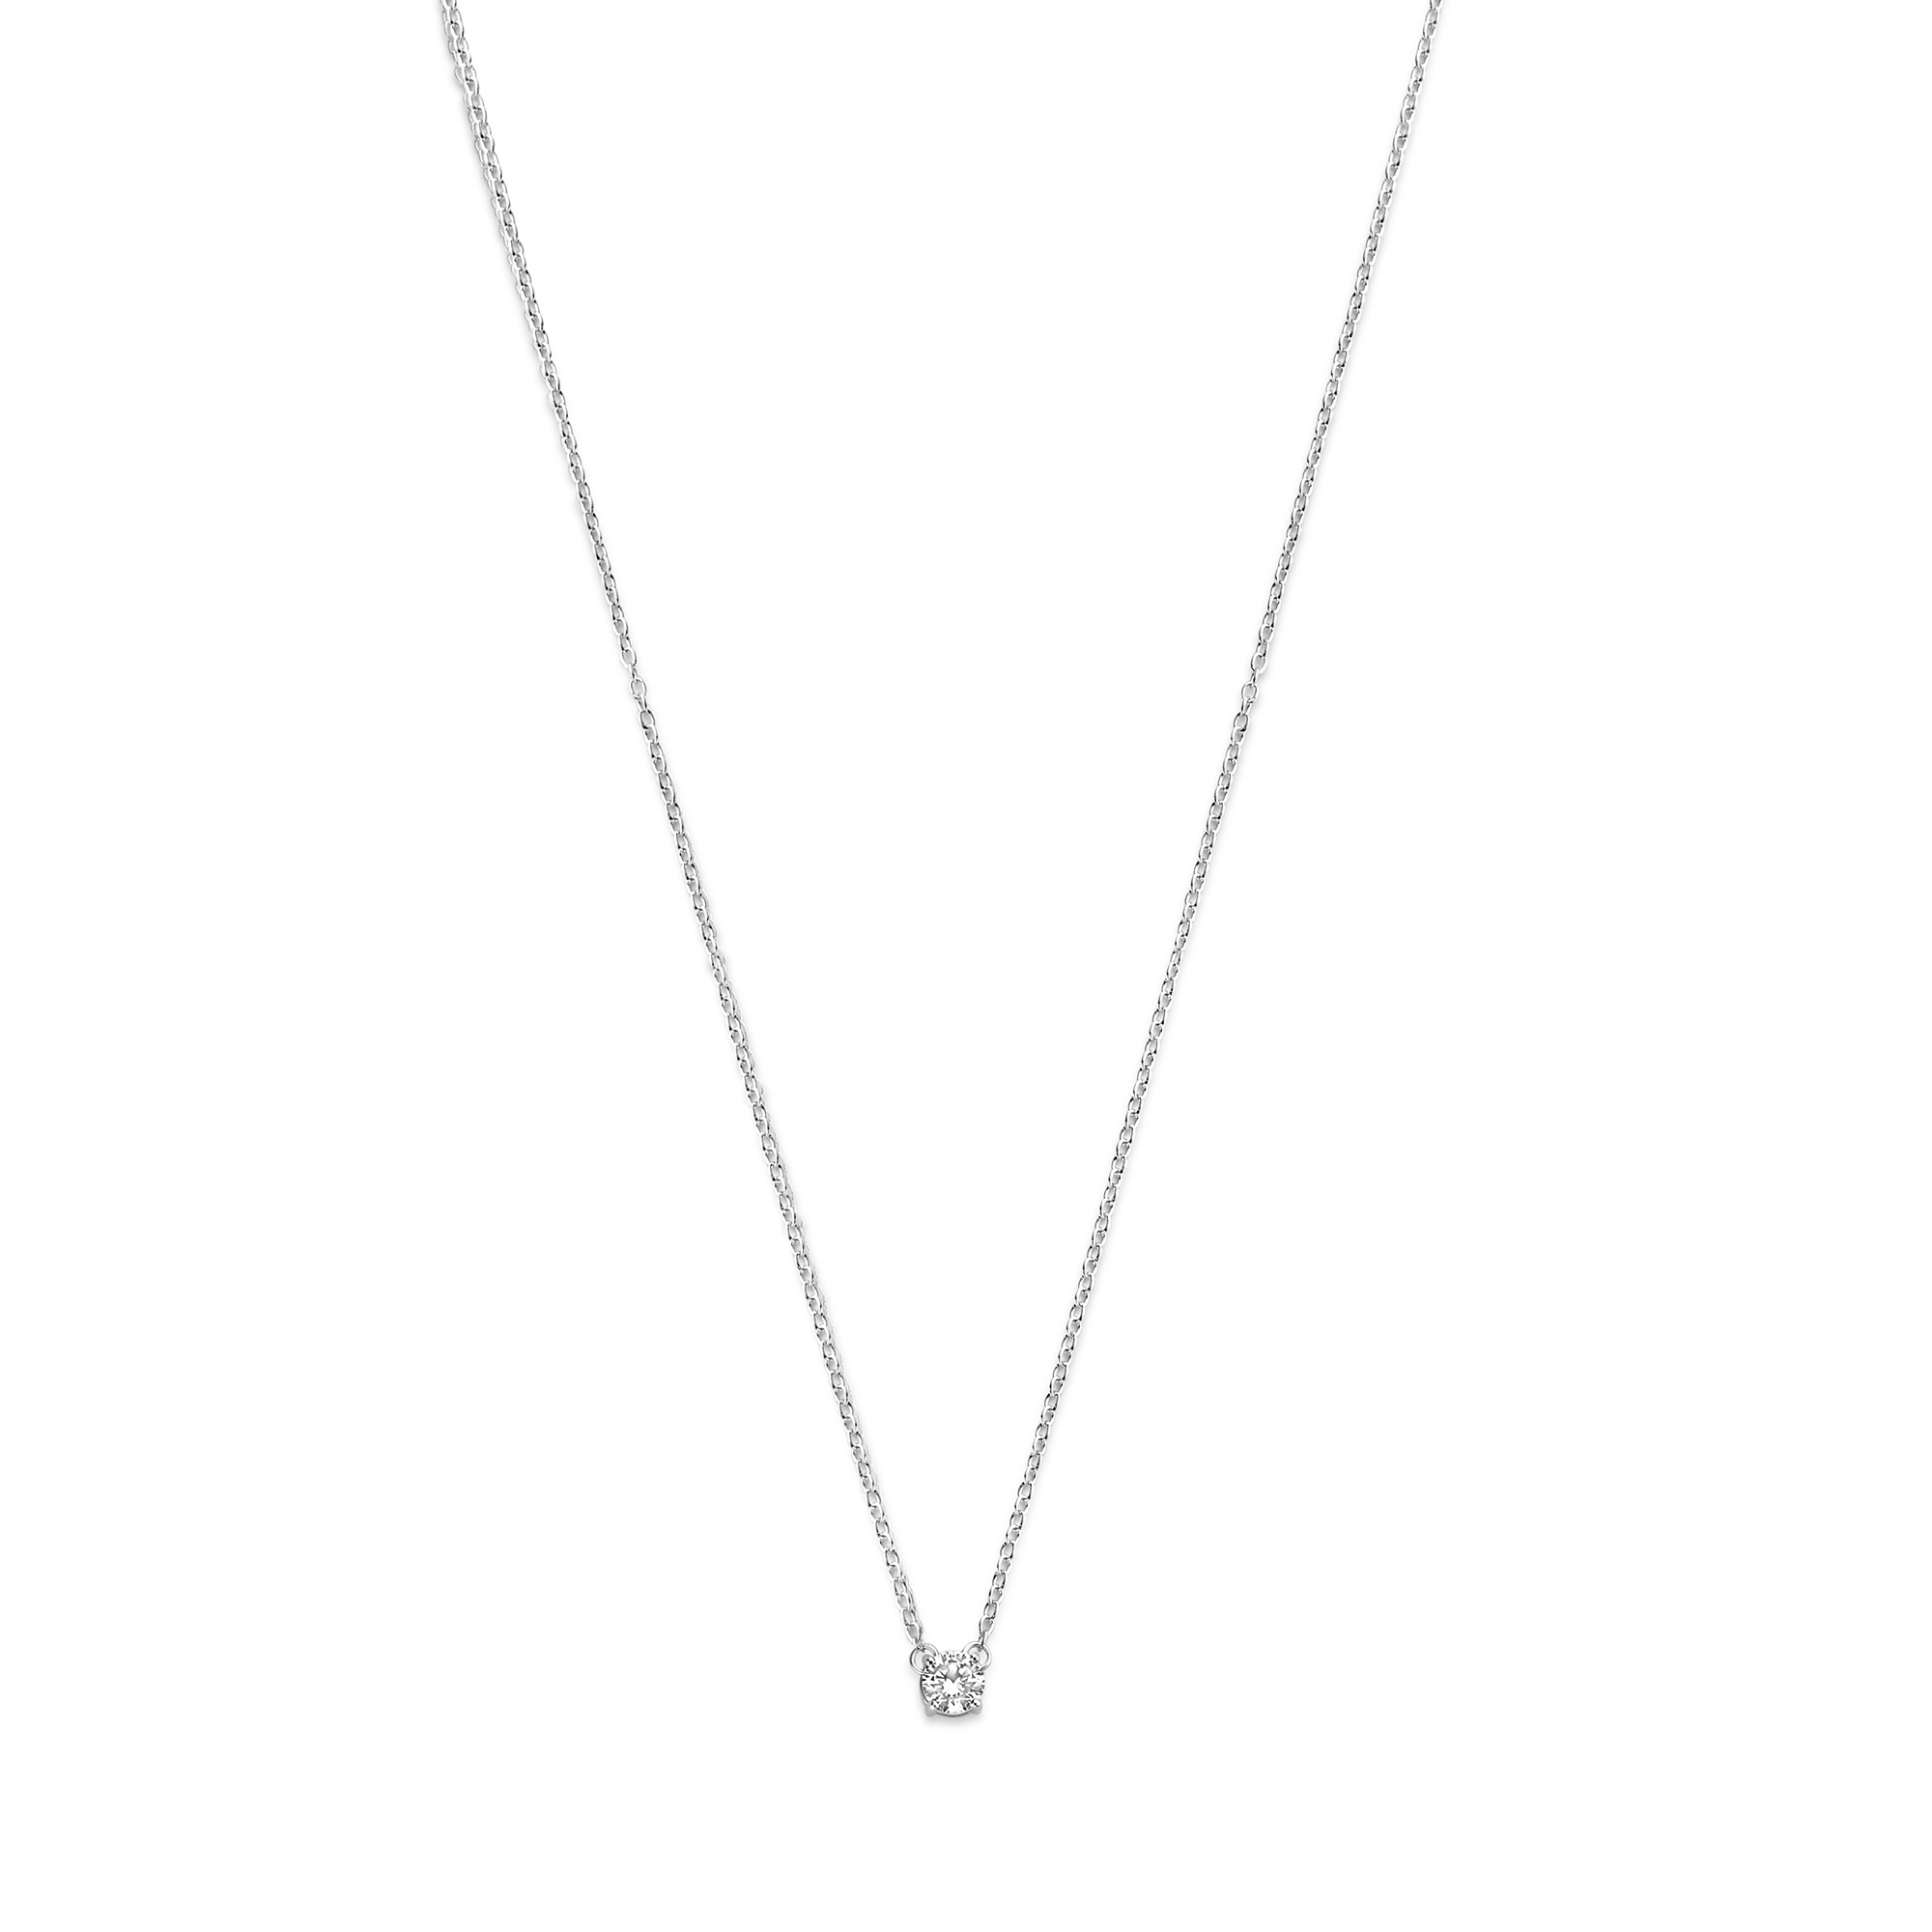 Selected Jewels Mila Elodie collier en argent sterling 925